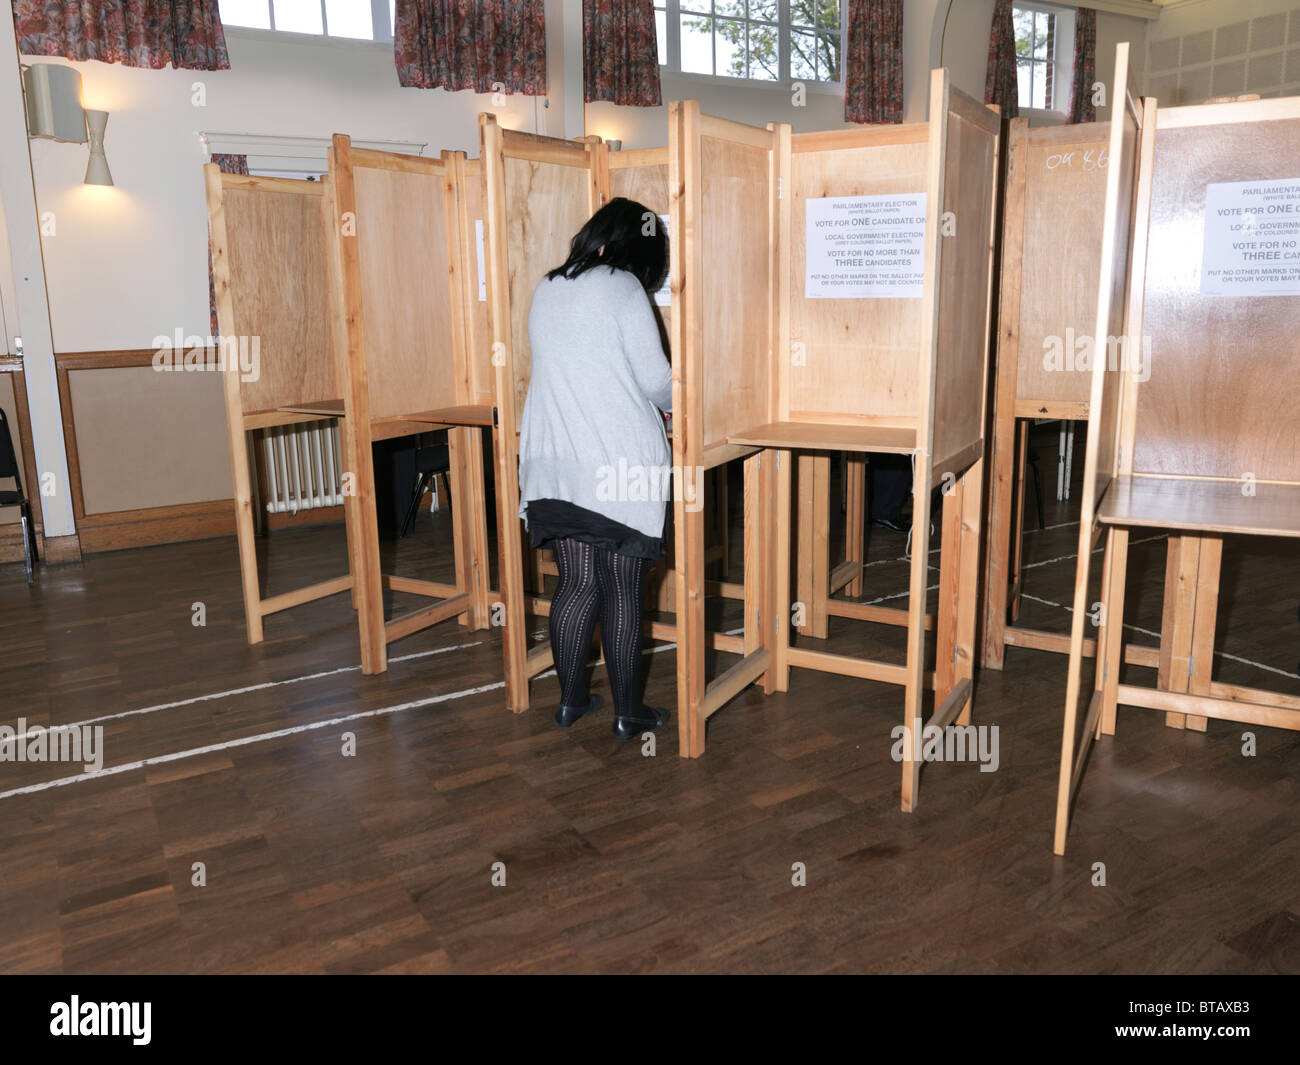 Voting Booth General Election May 2010 in Church Hall England - Stock Image